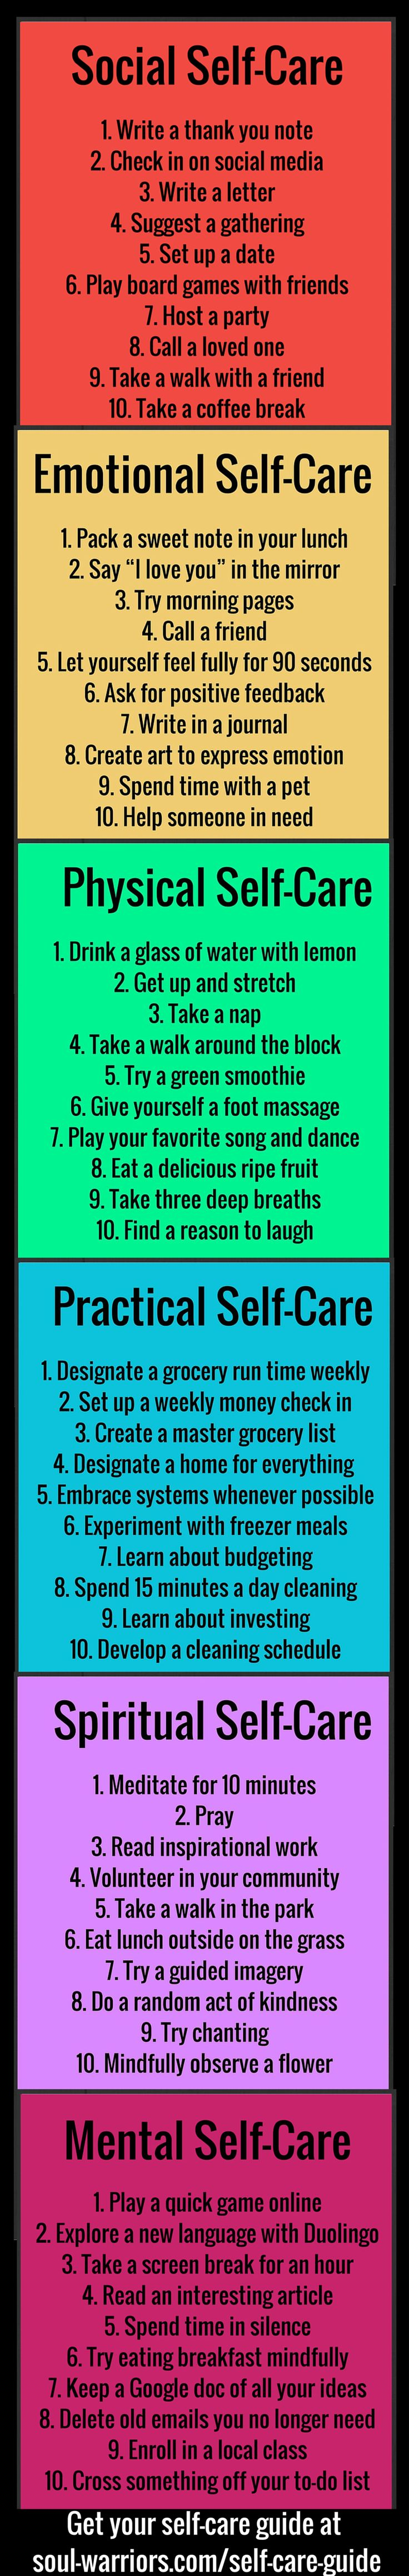 //Step up your self care with this free printable guide - click through to http://www.soul-warriors.com/self-care-guide/ to download your copy.#goodtoknow